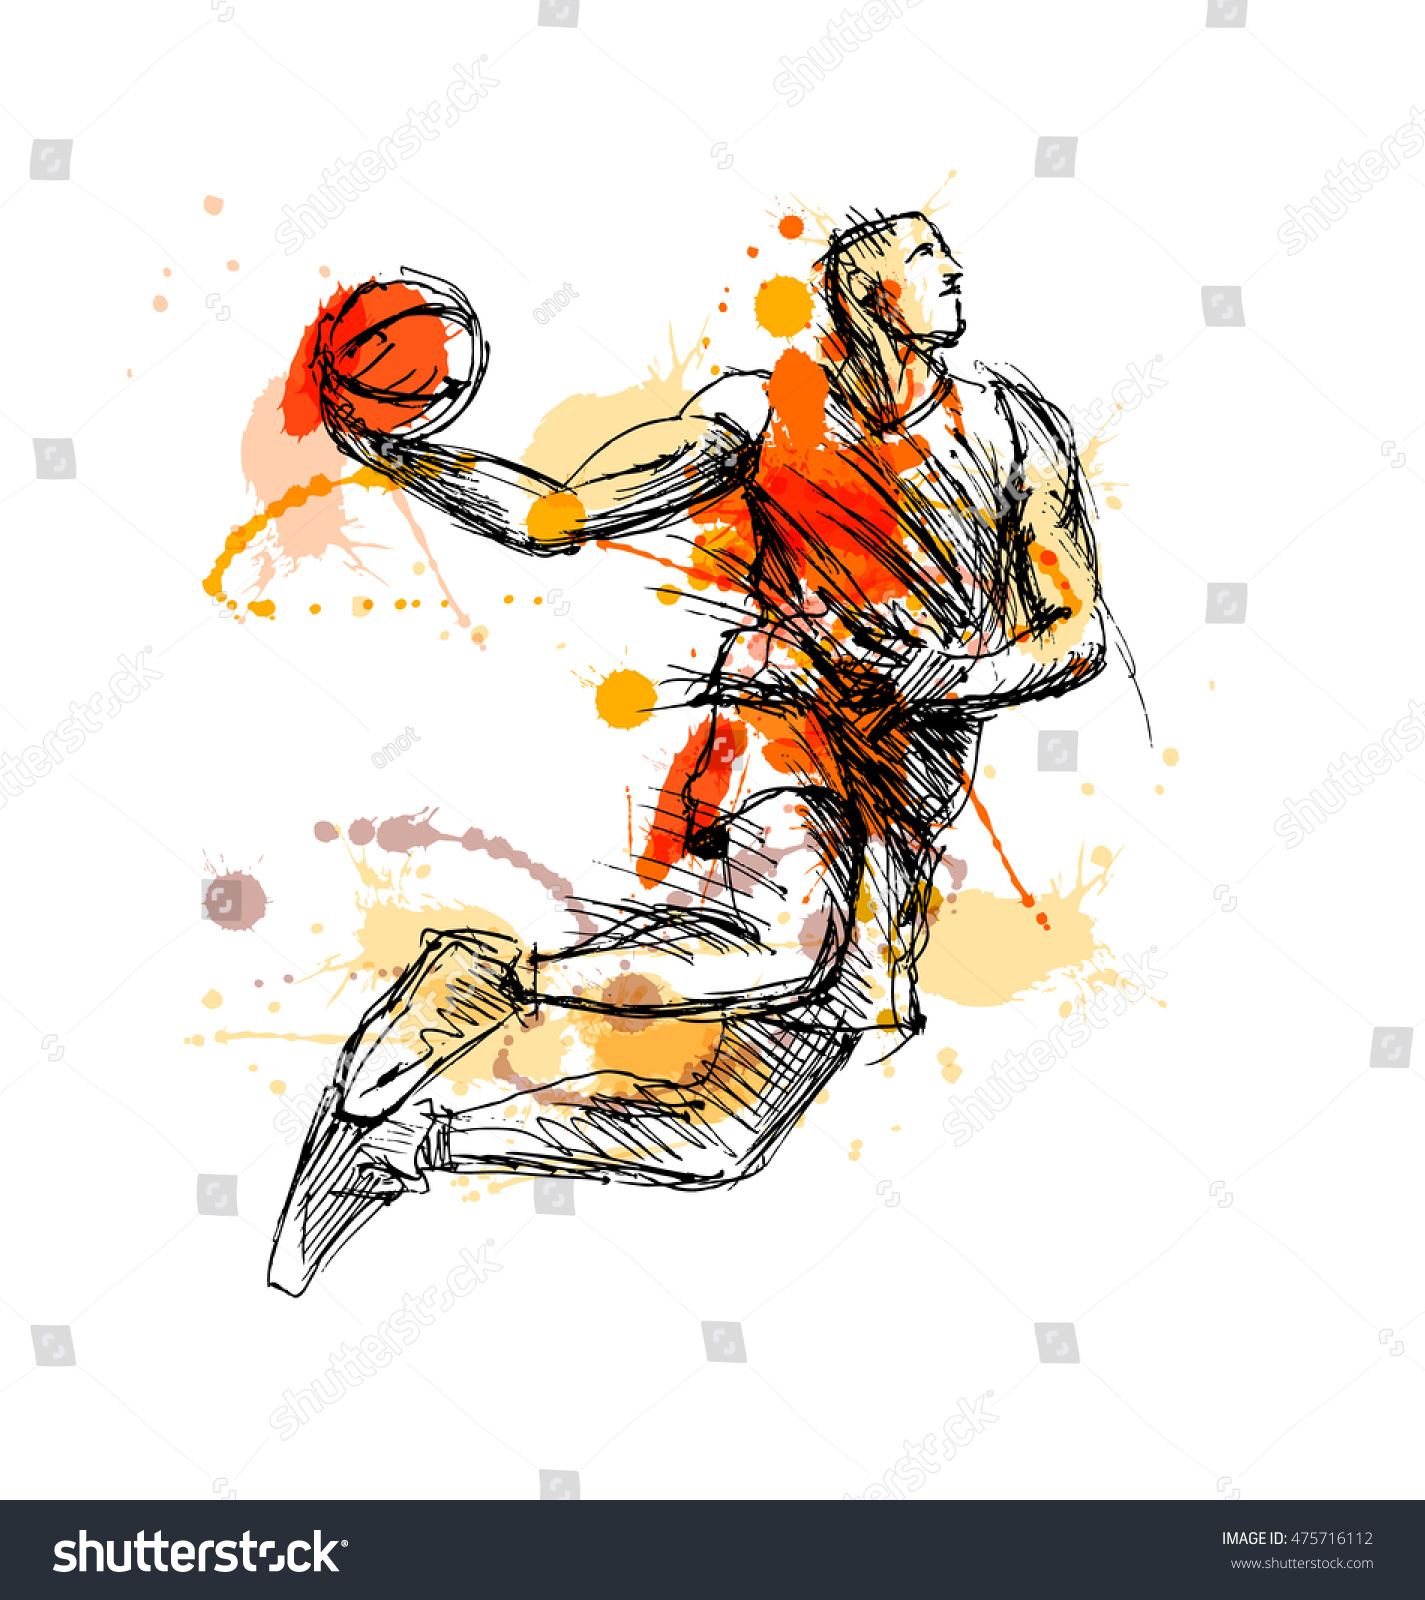 Colored Hand Sketch Basketball Player Vector Stock Vector 475716112 - Shutterstock